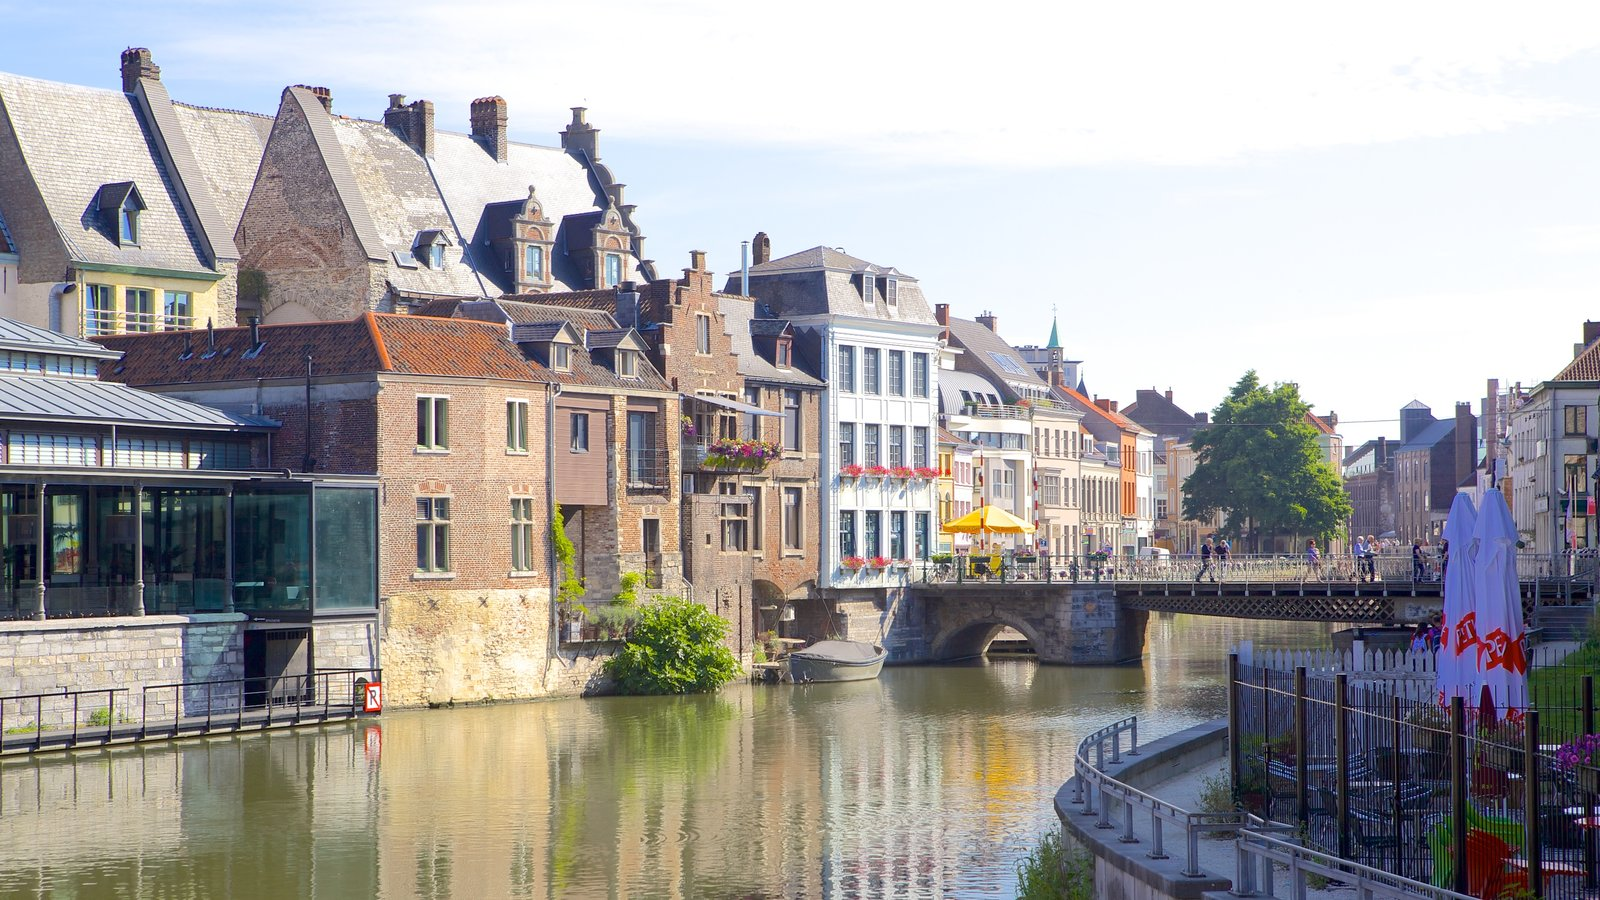 Ghent which includes a river or creek, a small town or village and a bridge